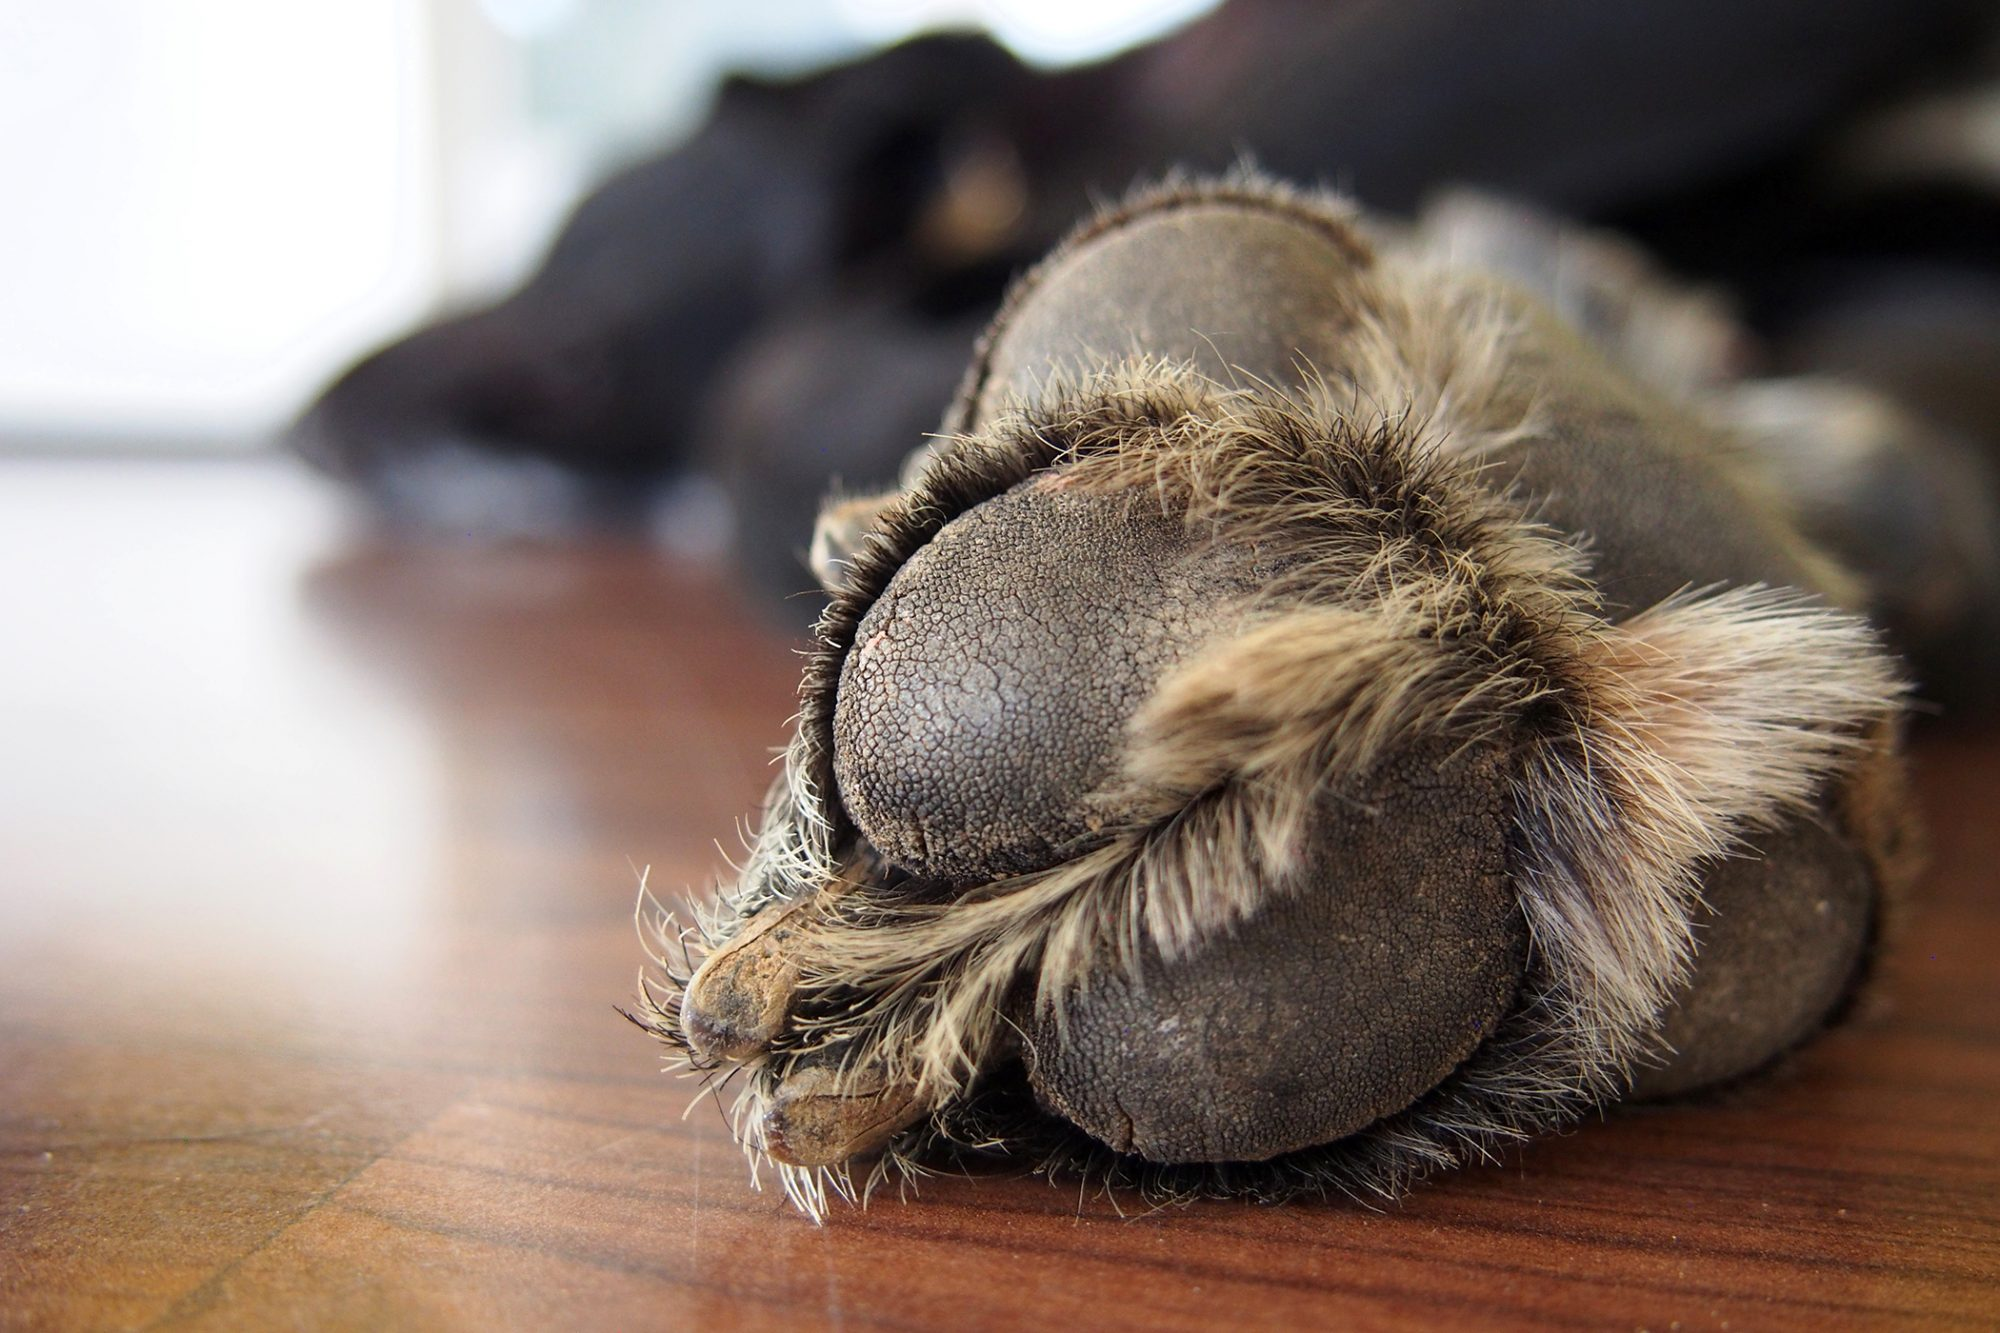 Closeup of furry dog paw